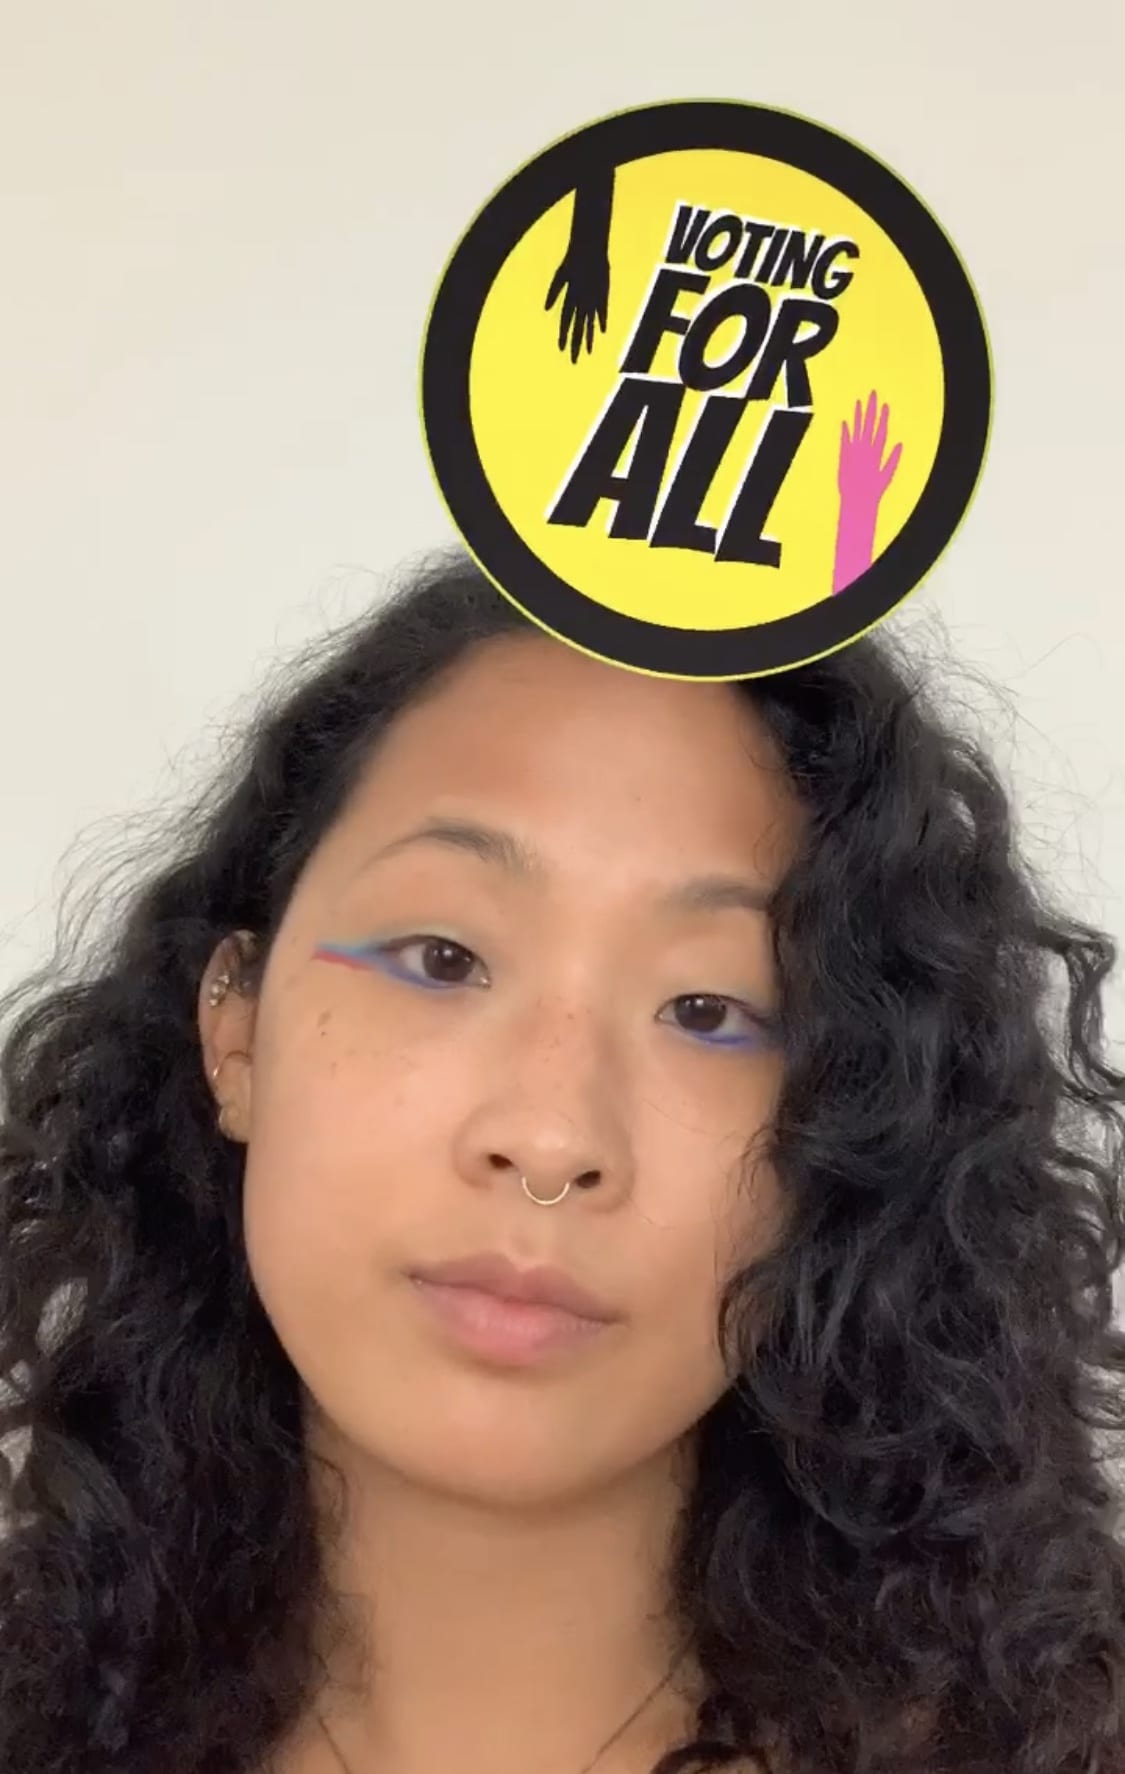 """Photo of artist Aram Han Sifuentes, wearing bright blue eyeliner and a nose ring, using an Instagram filter that places a sticker reading """"Voting for All"""" over her forehead"""